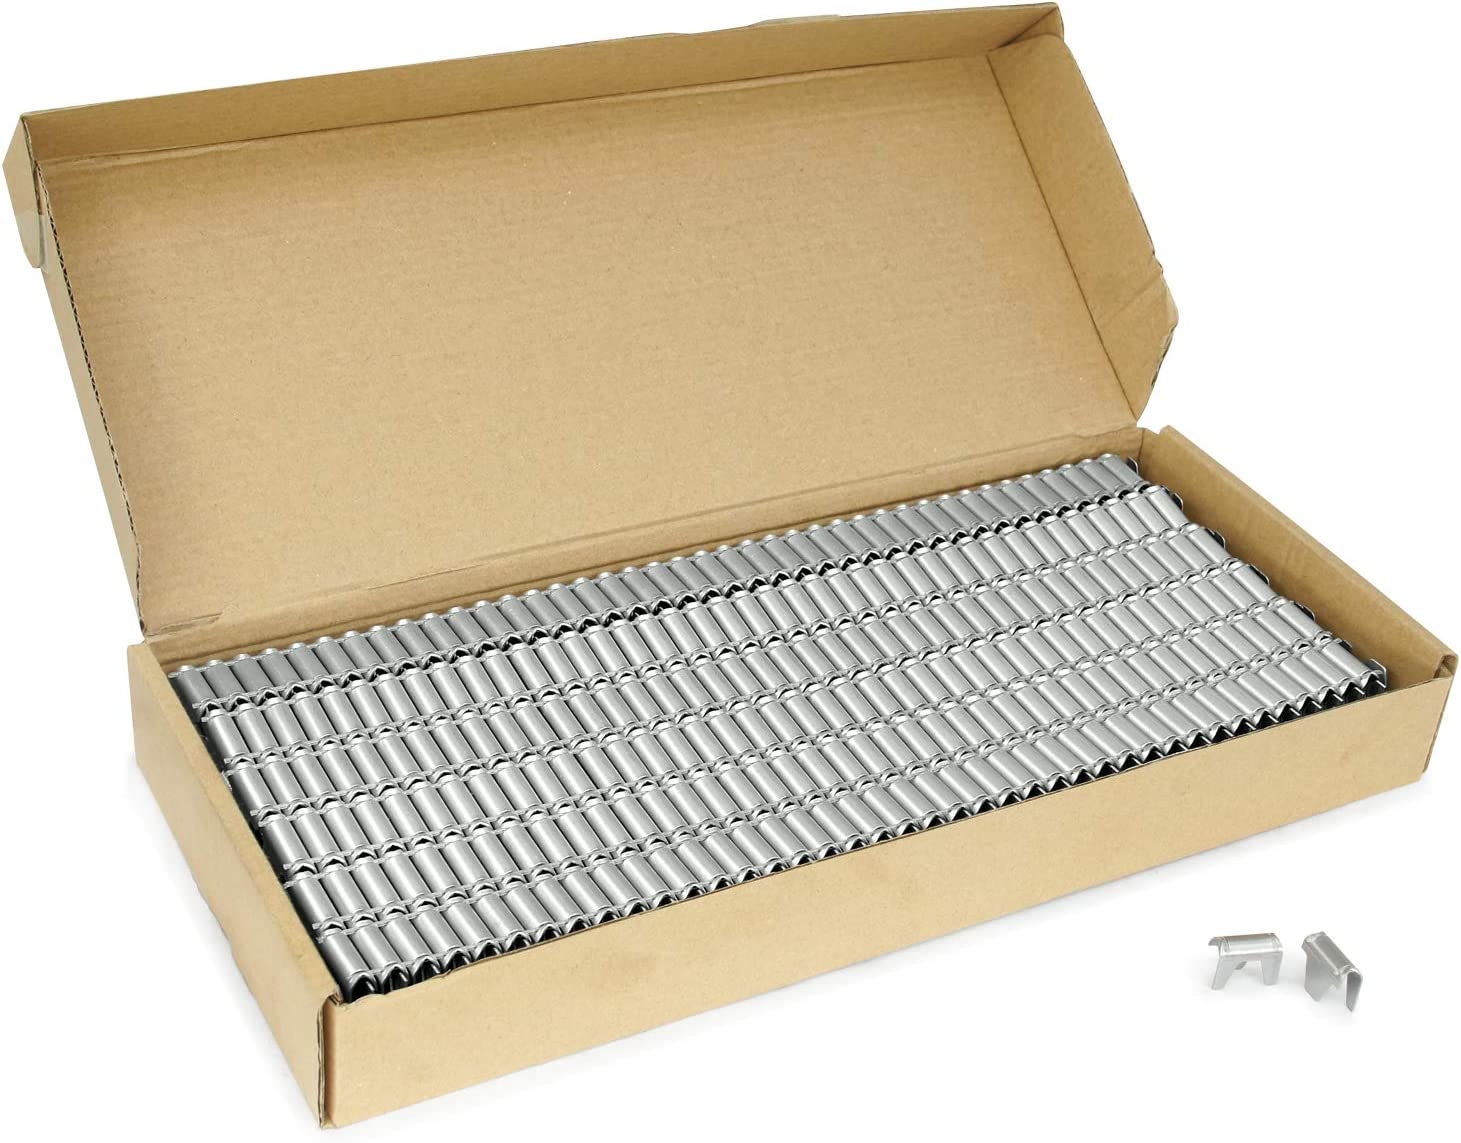 CL-4 Cold Roll Steel or Galvanized Clips Clinching 960 Ranking Limited Special Price TOP1 PCS Box